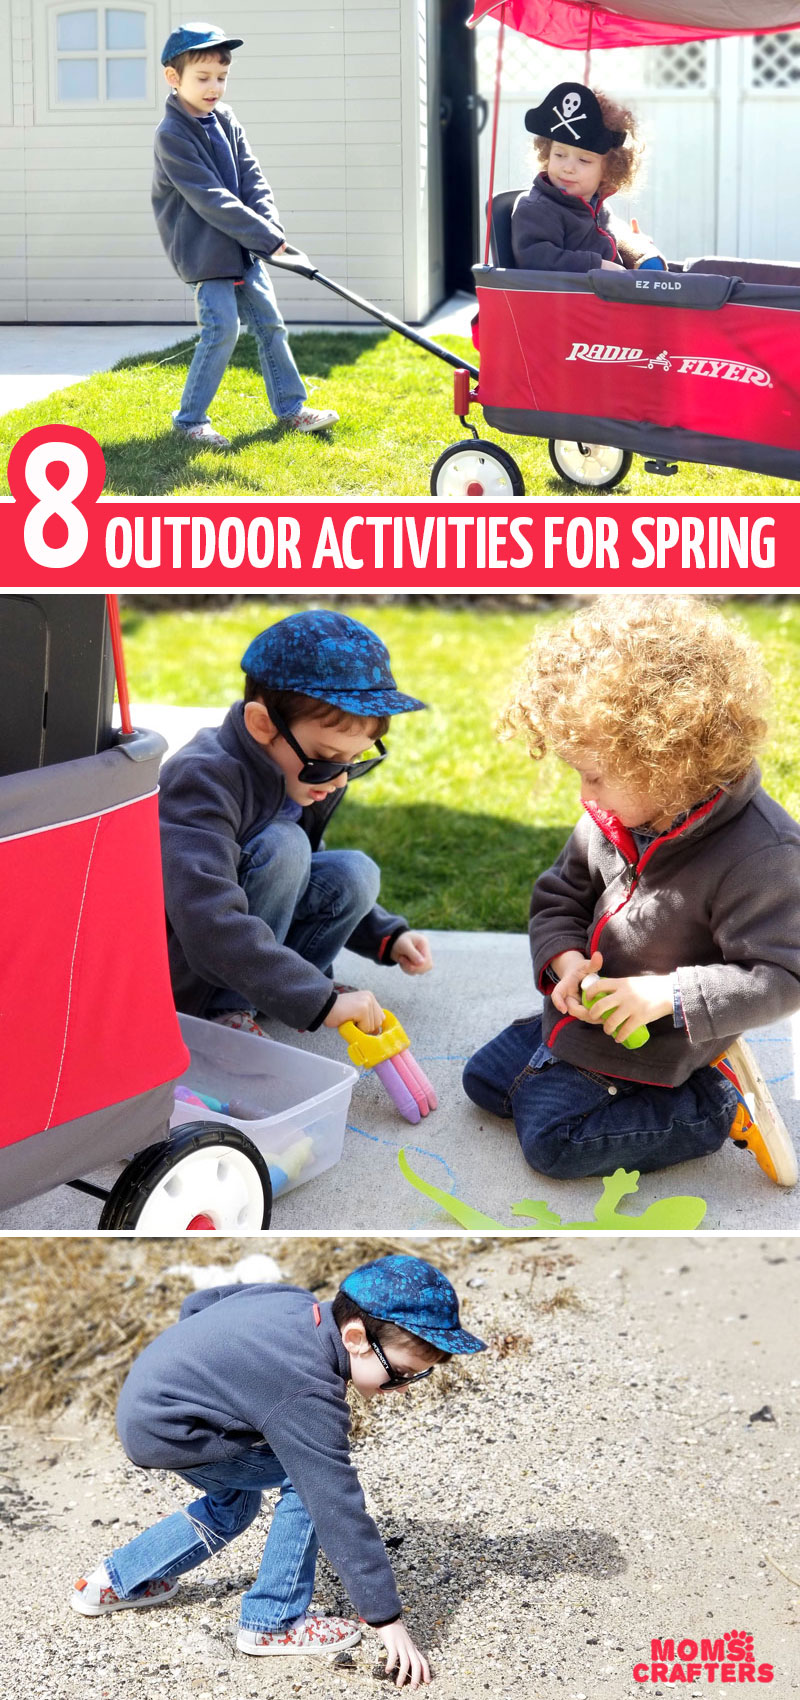 Looking for some cool outdoor activities for spring for toddlers and preschoolers? These fun learning and crafting ideas to do outside can be done in chilly weather too!